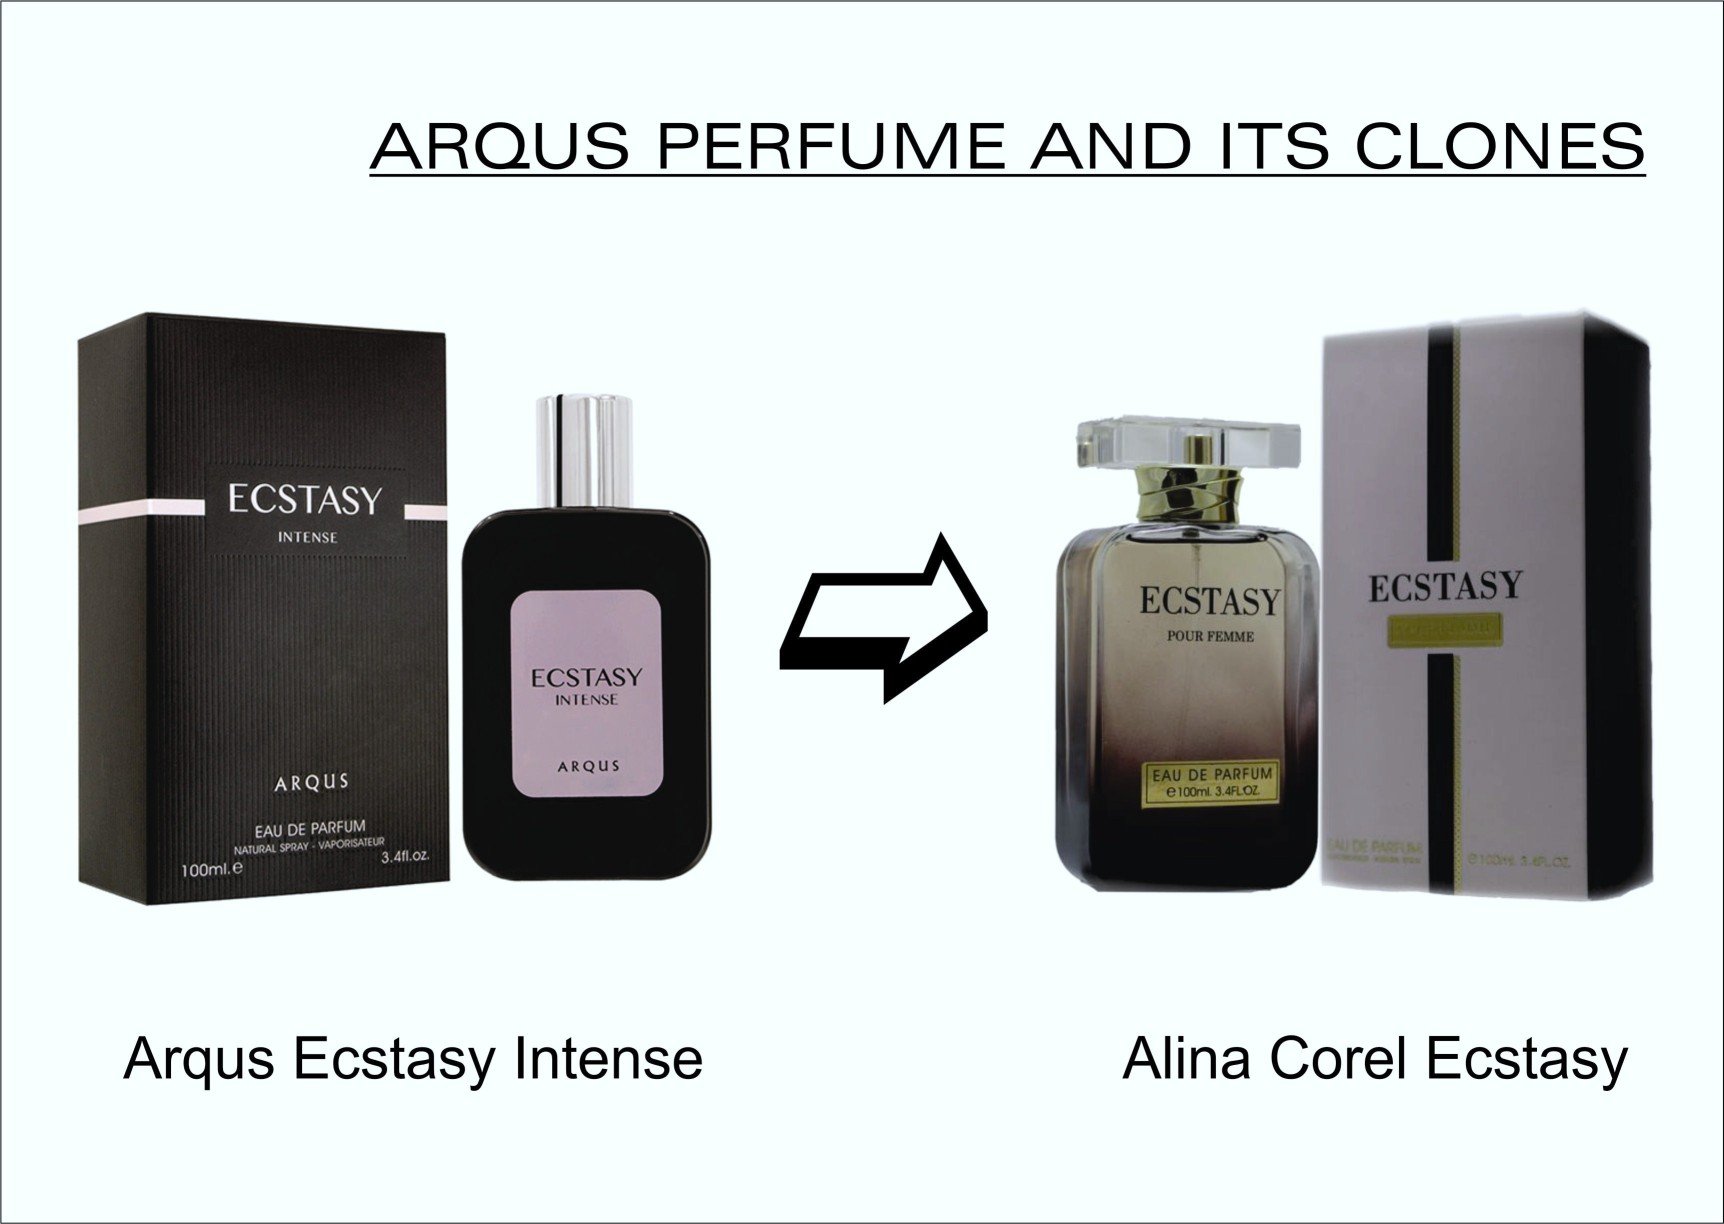 arqus-ecstasy-intense-perfume-for-women-100-ml-edp-by-lattafa-perfumes